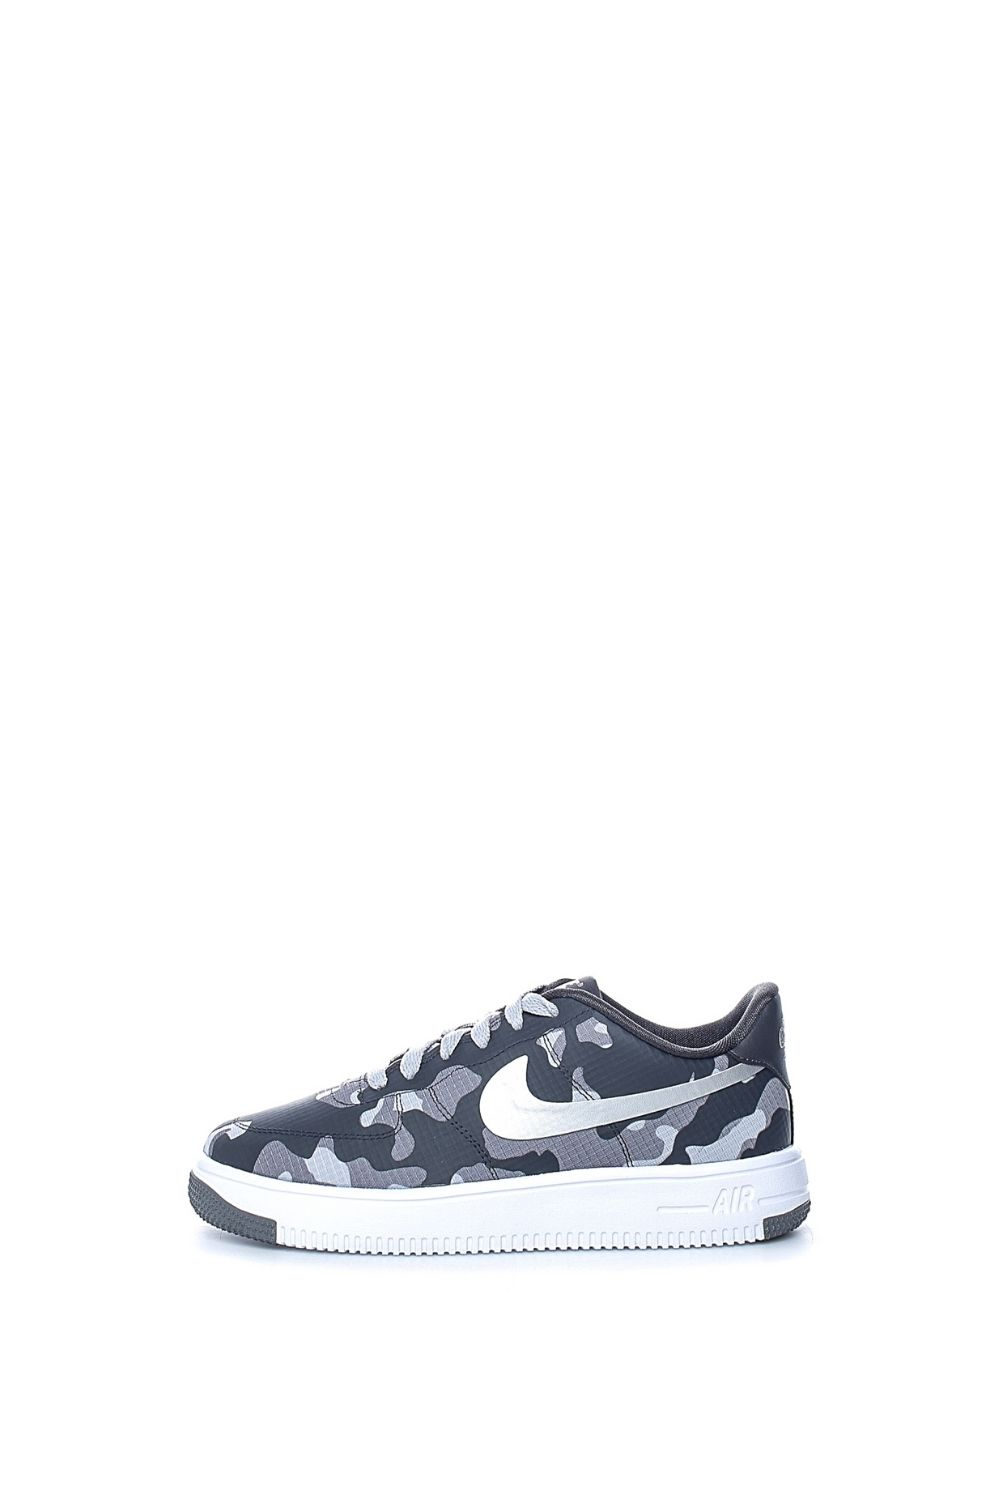 Collective Online NIKE – Παιδικά παπούτσια AF1 ULTRAFORCE CRFT GS DNU γκρι 3b371d08fba